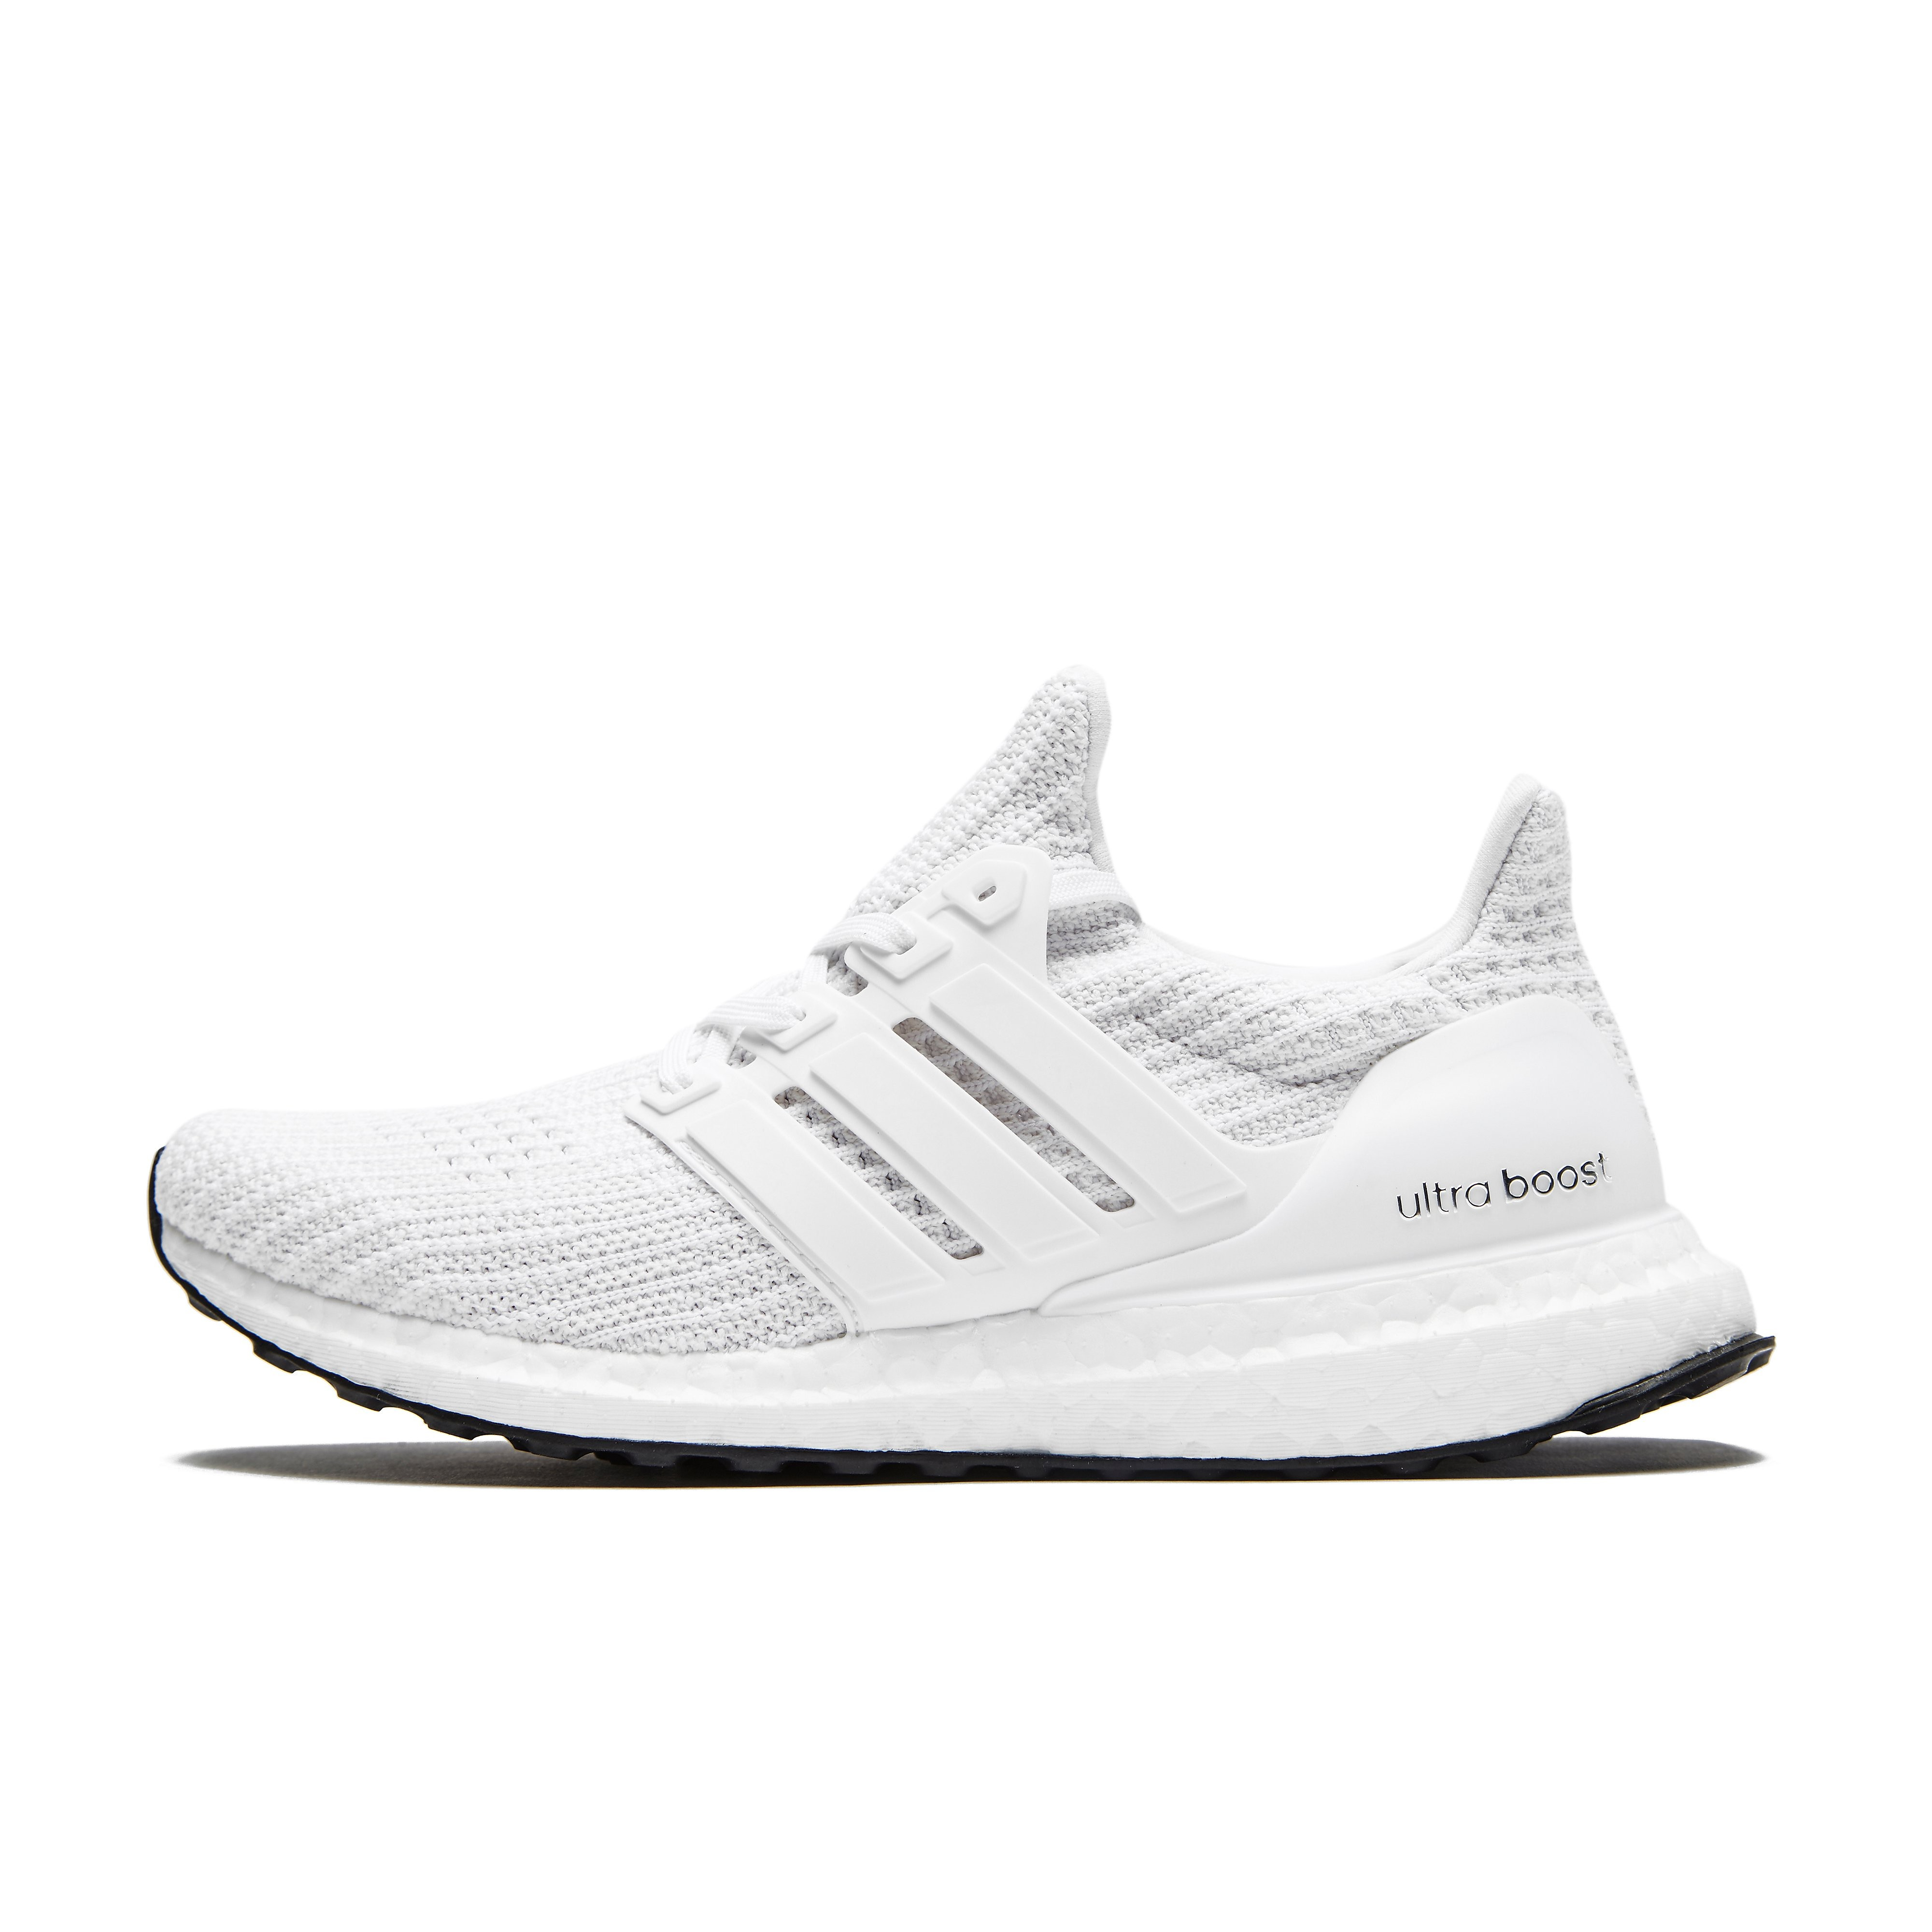 Women's adidas Ultraboost Running Shoes - White, White